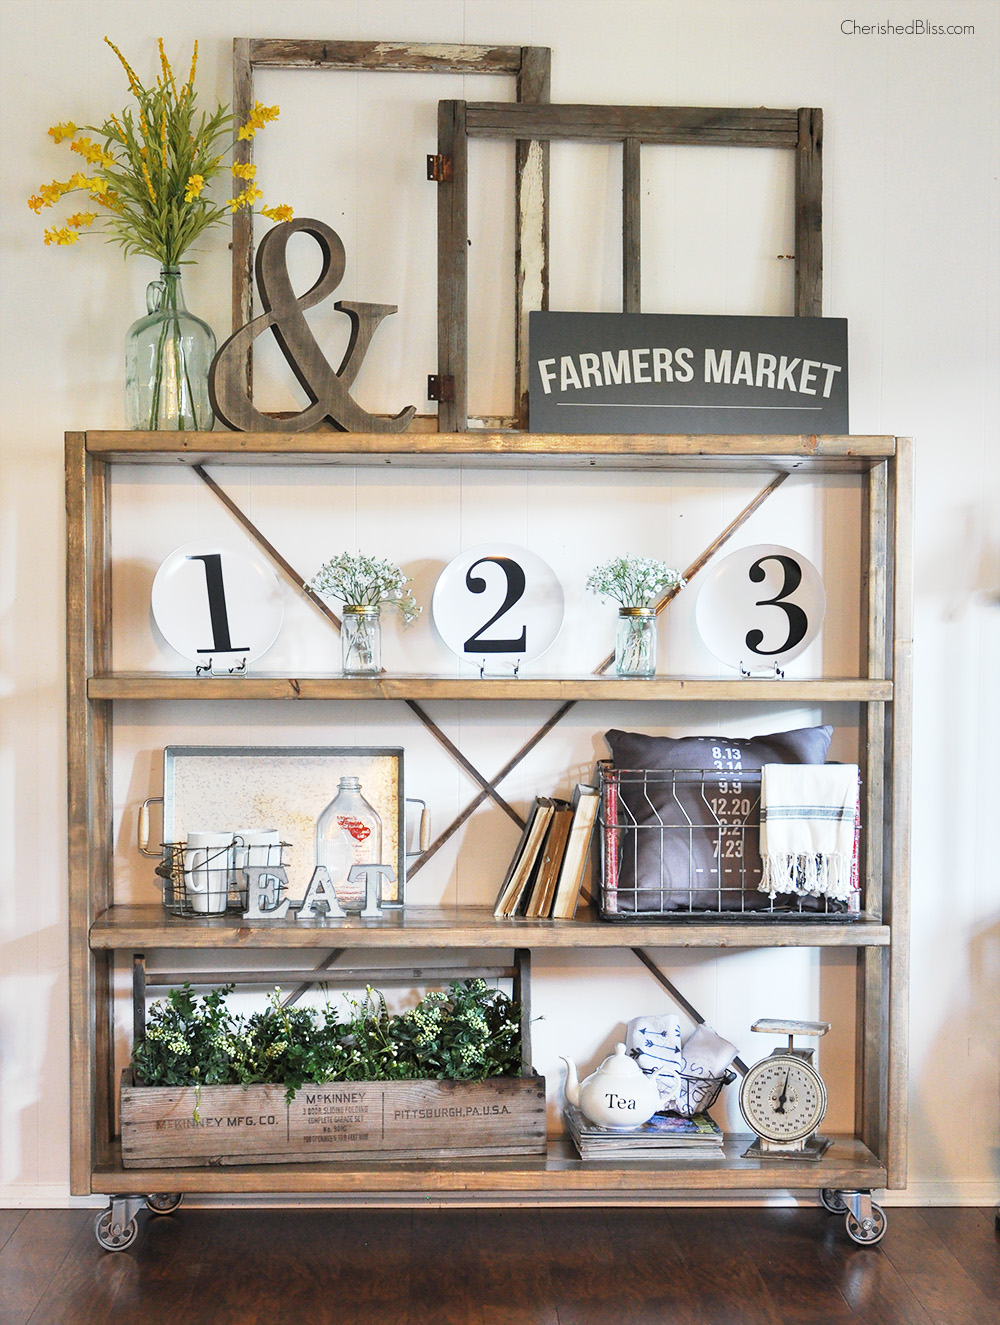 20 Restoration Hardware Inspired Farmhouse Diy Projects You Can Create The Cottage Market